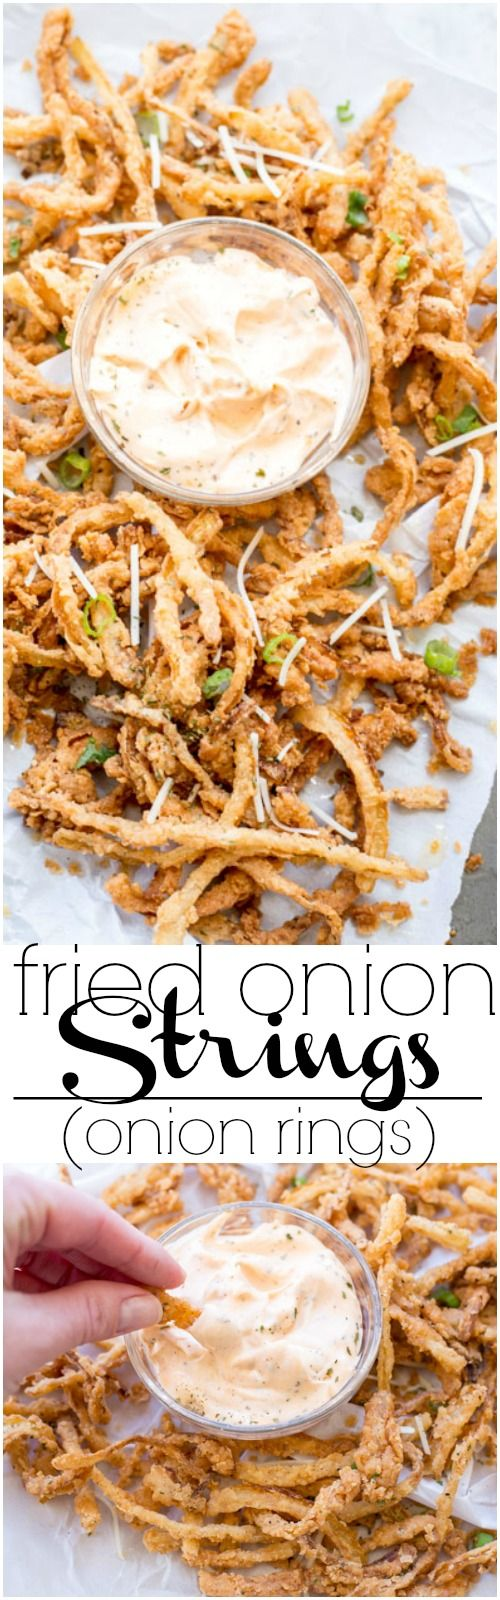 Fried onion strings recipe (onion rings) ValentinasCorner.com